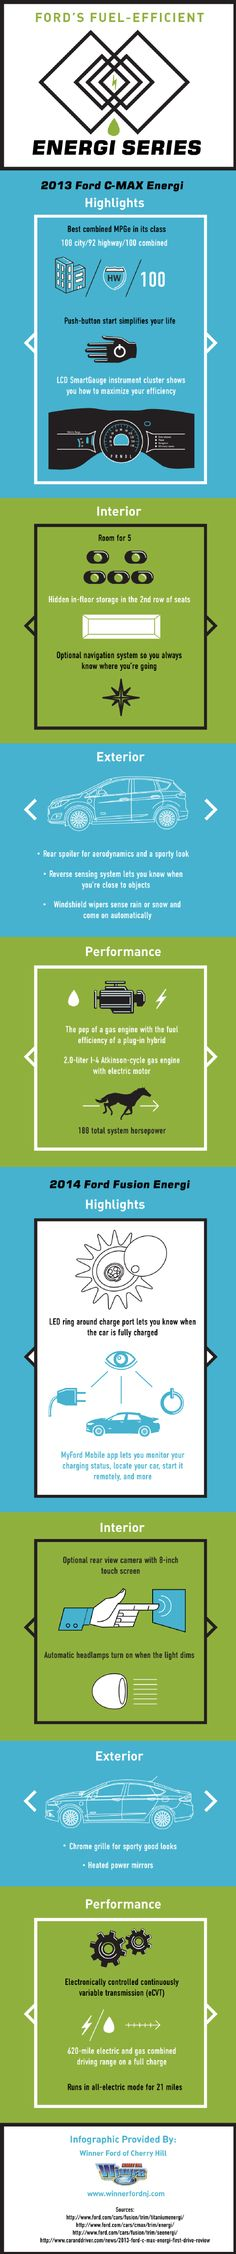 The 2013 Ford C-MAX Energi has room for five passengers as well as hidden in-floor storage in the second row of seats. Discover the Energi's other amazing features by reading through this infographic from a New Jersey Ford dealership.